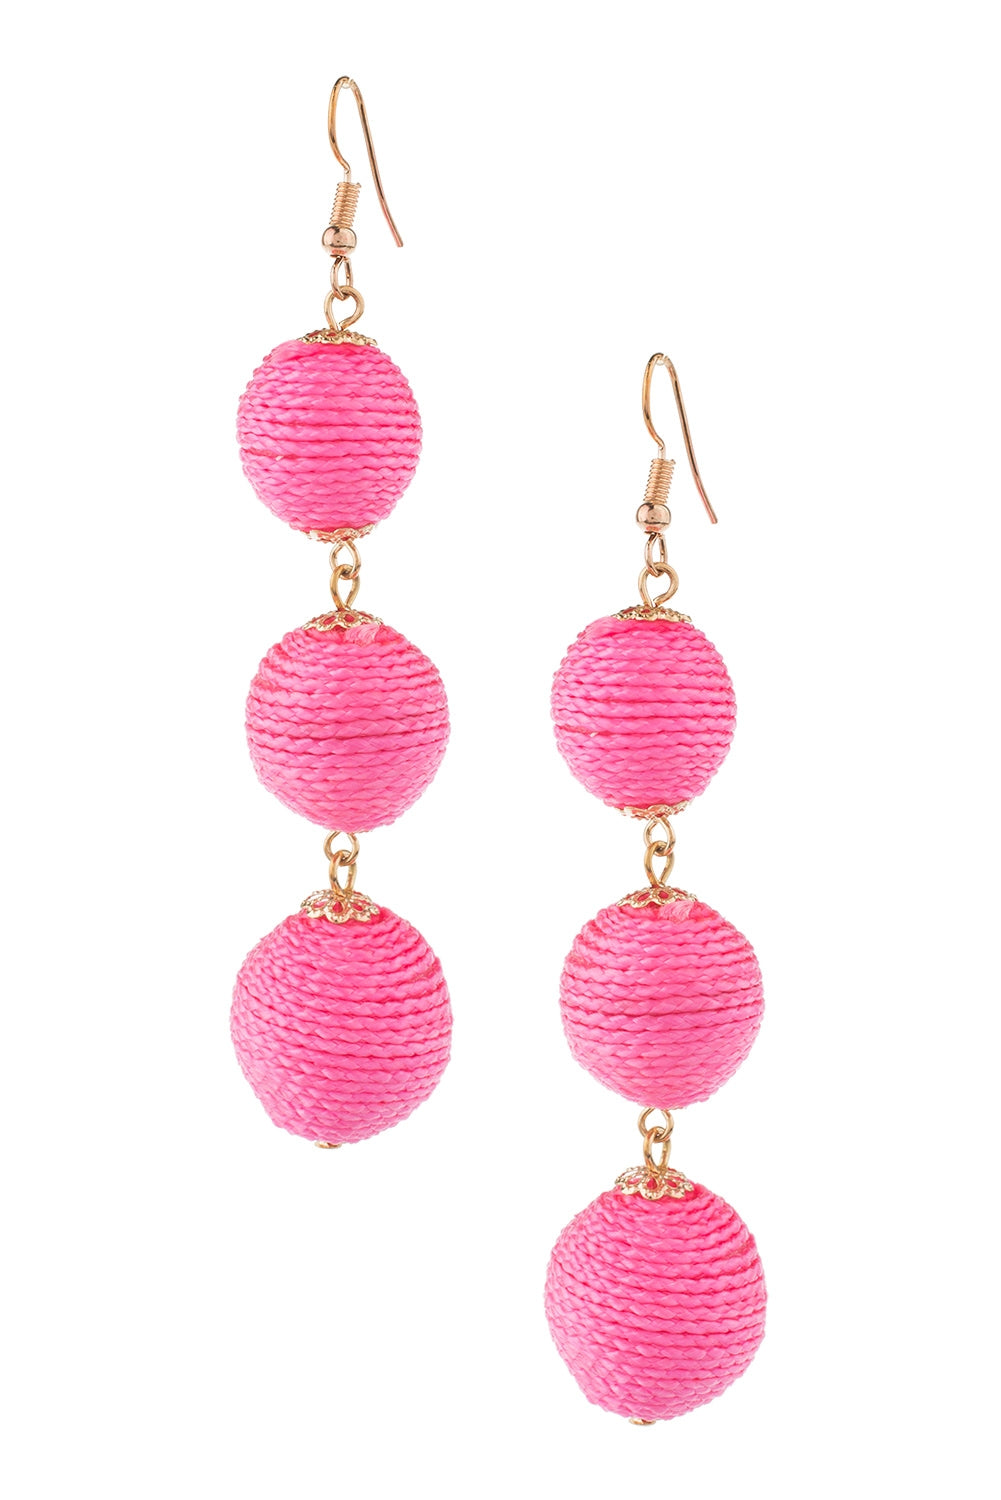 Type 1 Pink Pop Earrings